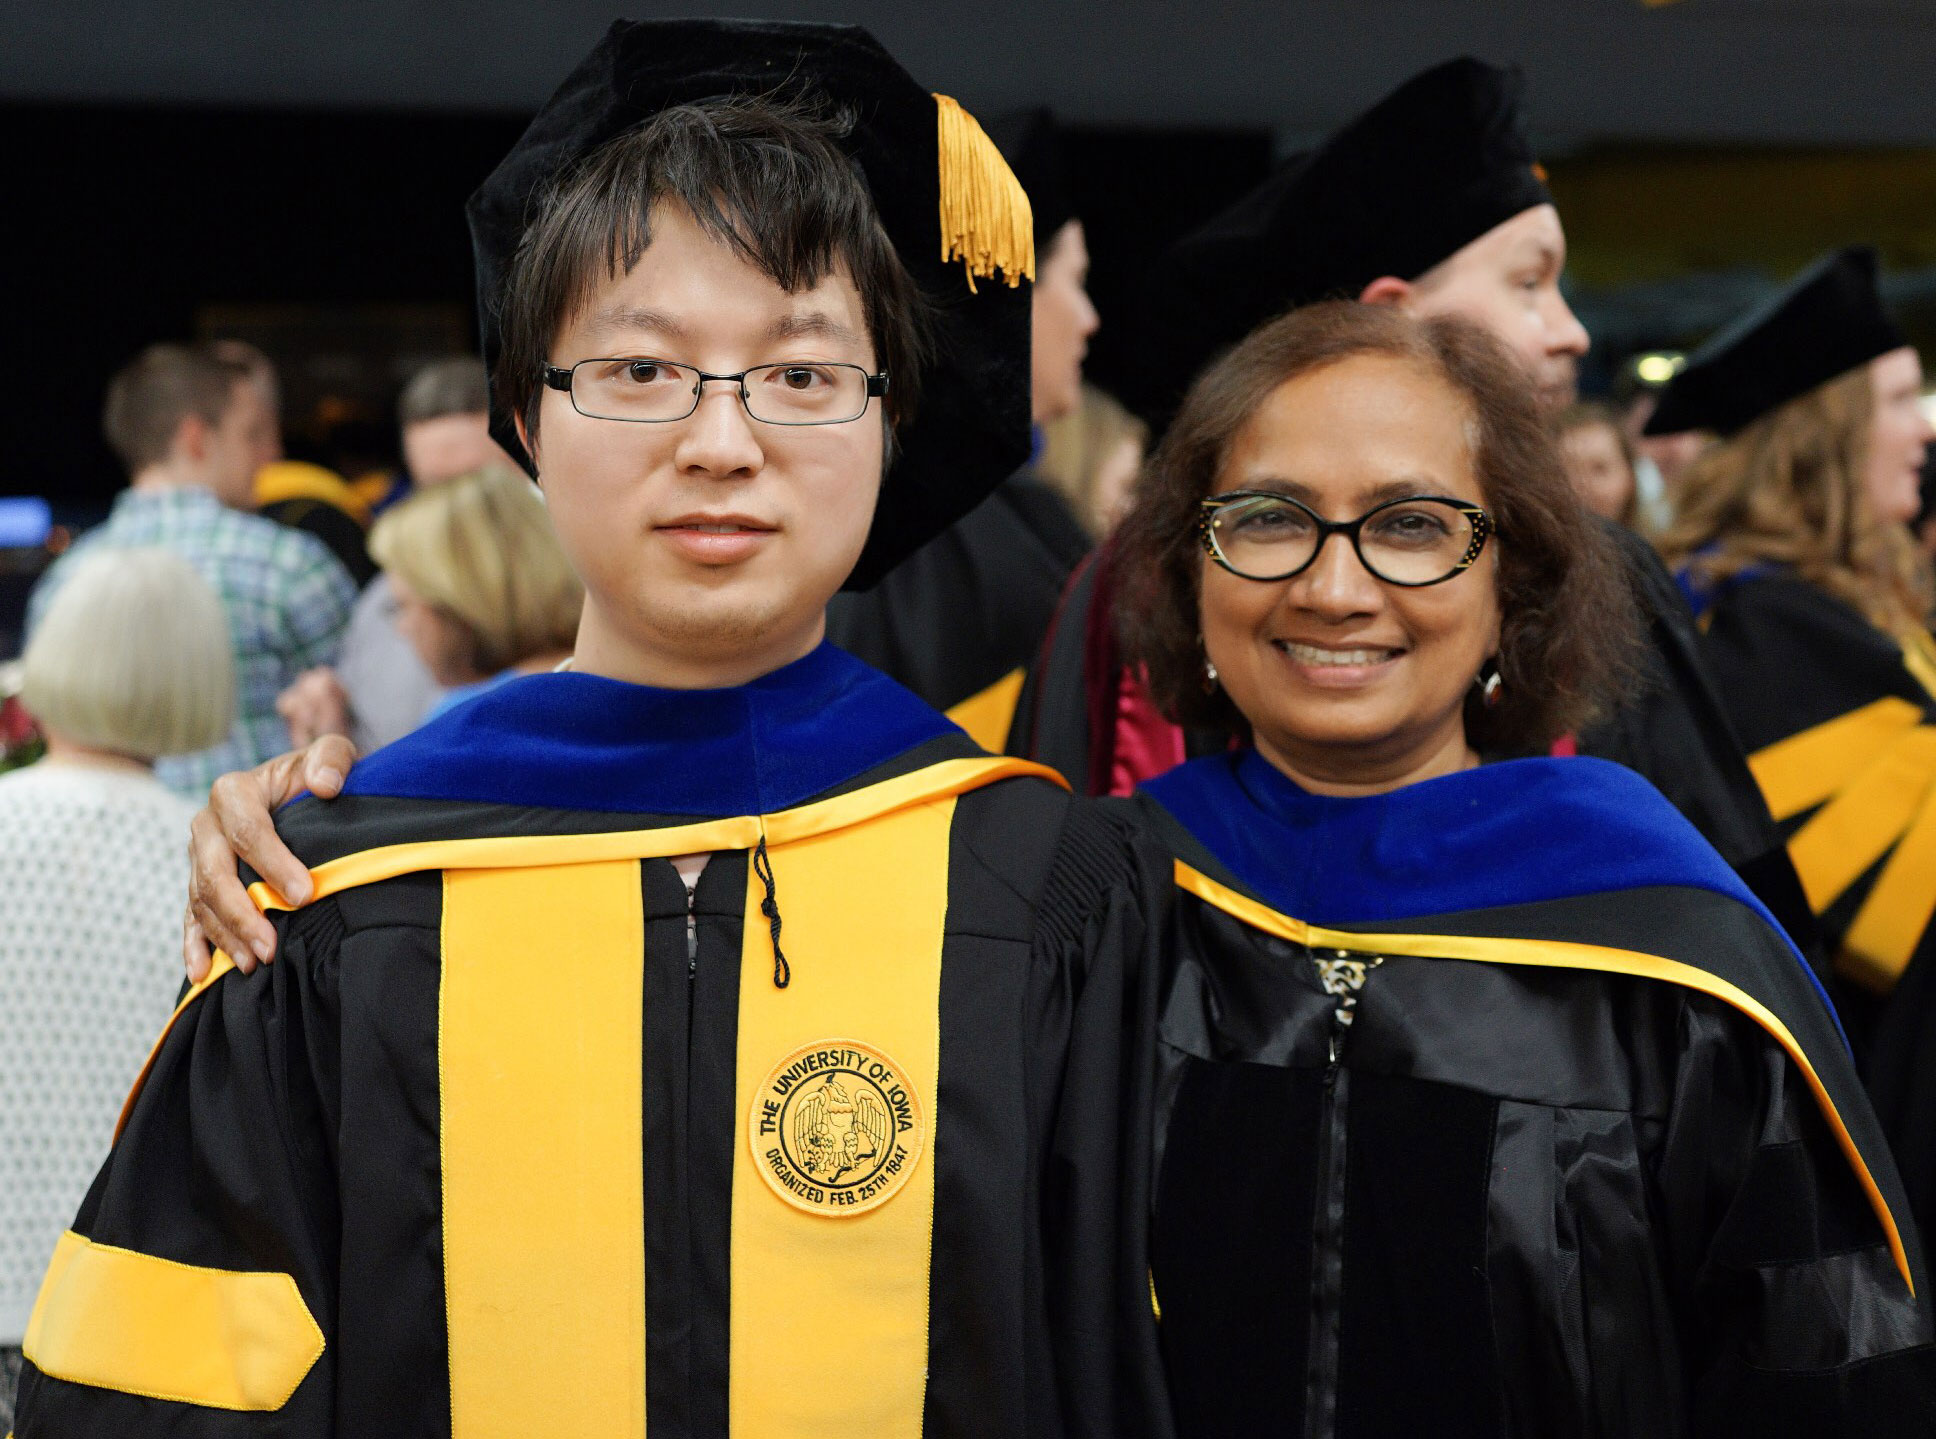 man and woman posing at commencement ceremony